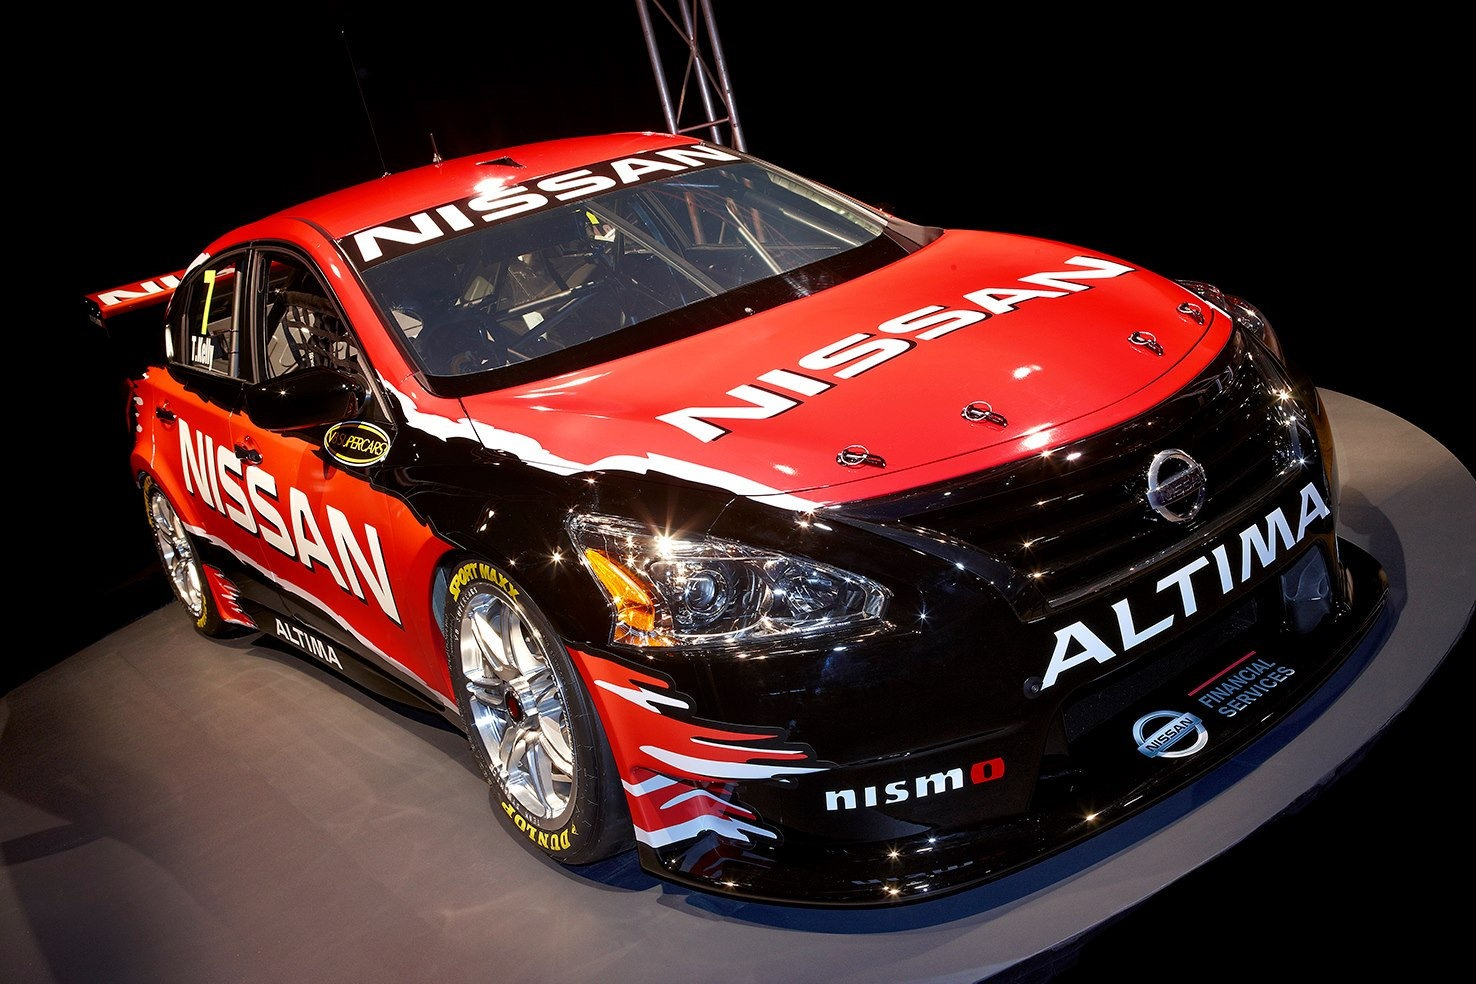 2013 Nissan Altima Supercar V8 Supercar Revealed